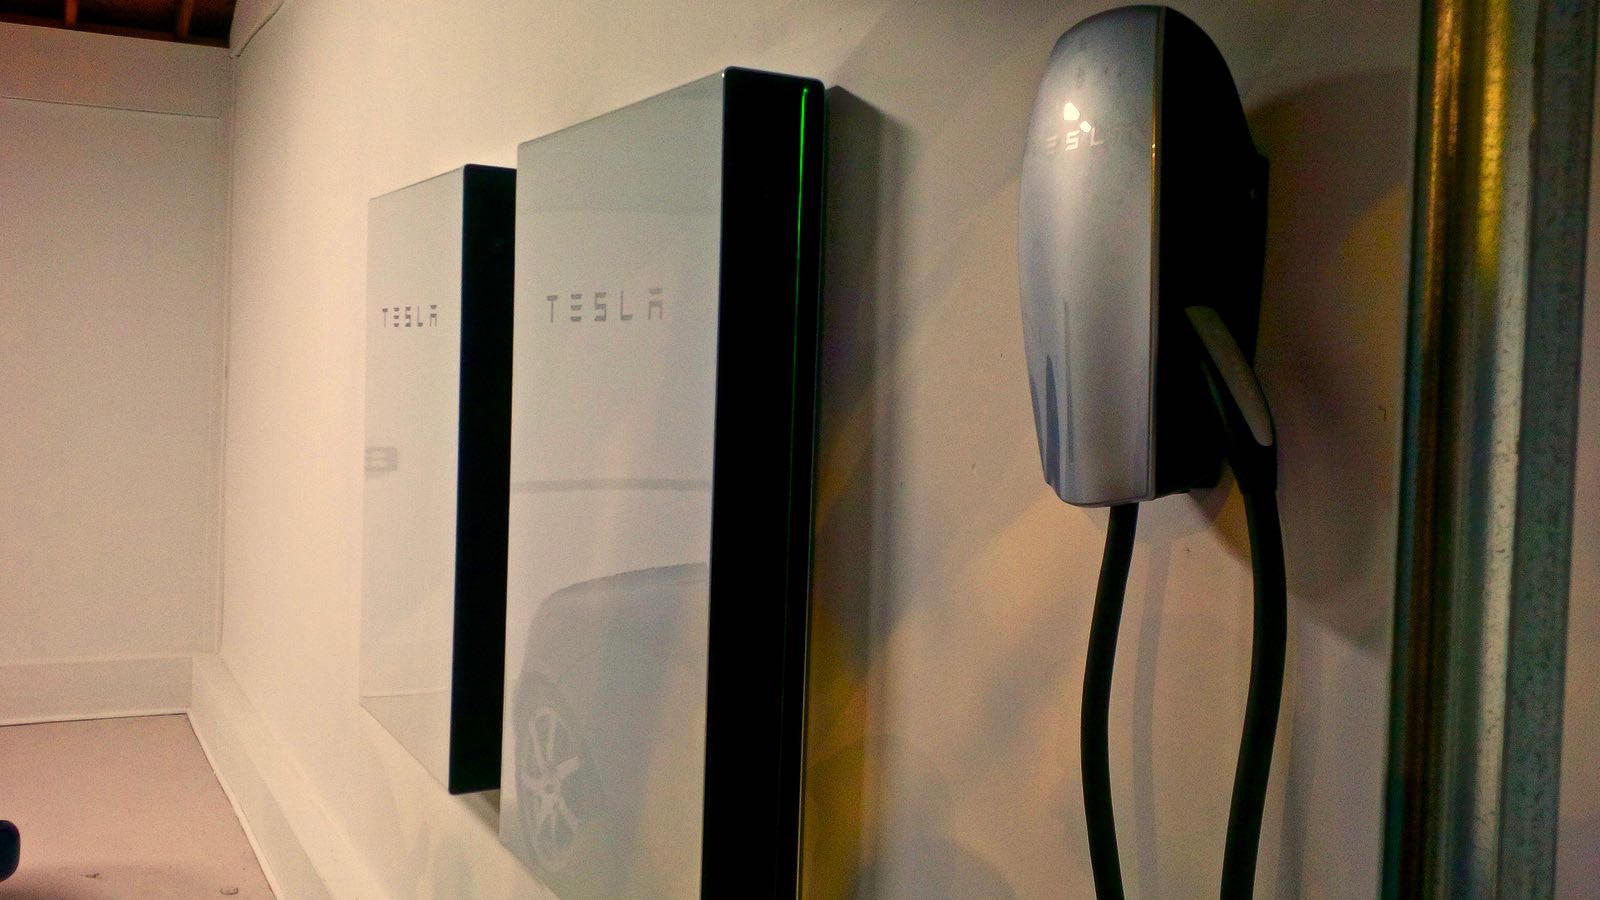 Tesla Powerwall 2 Cost >> Tesla dumbs down Powerwall 2 offering but it actually comes in two versions